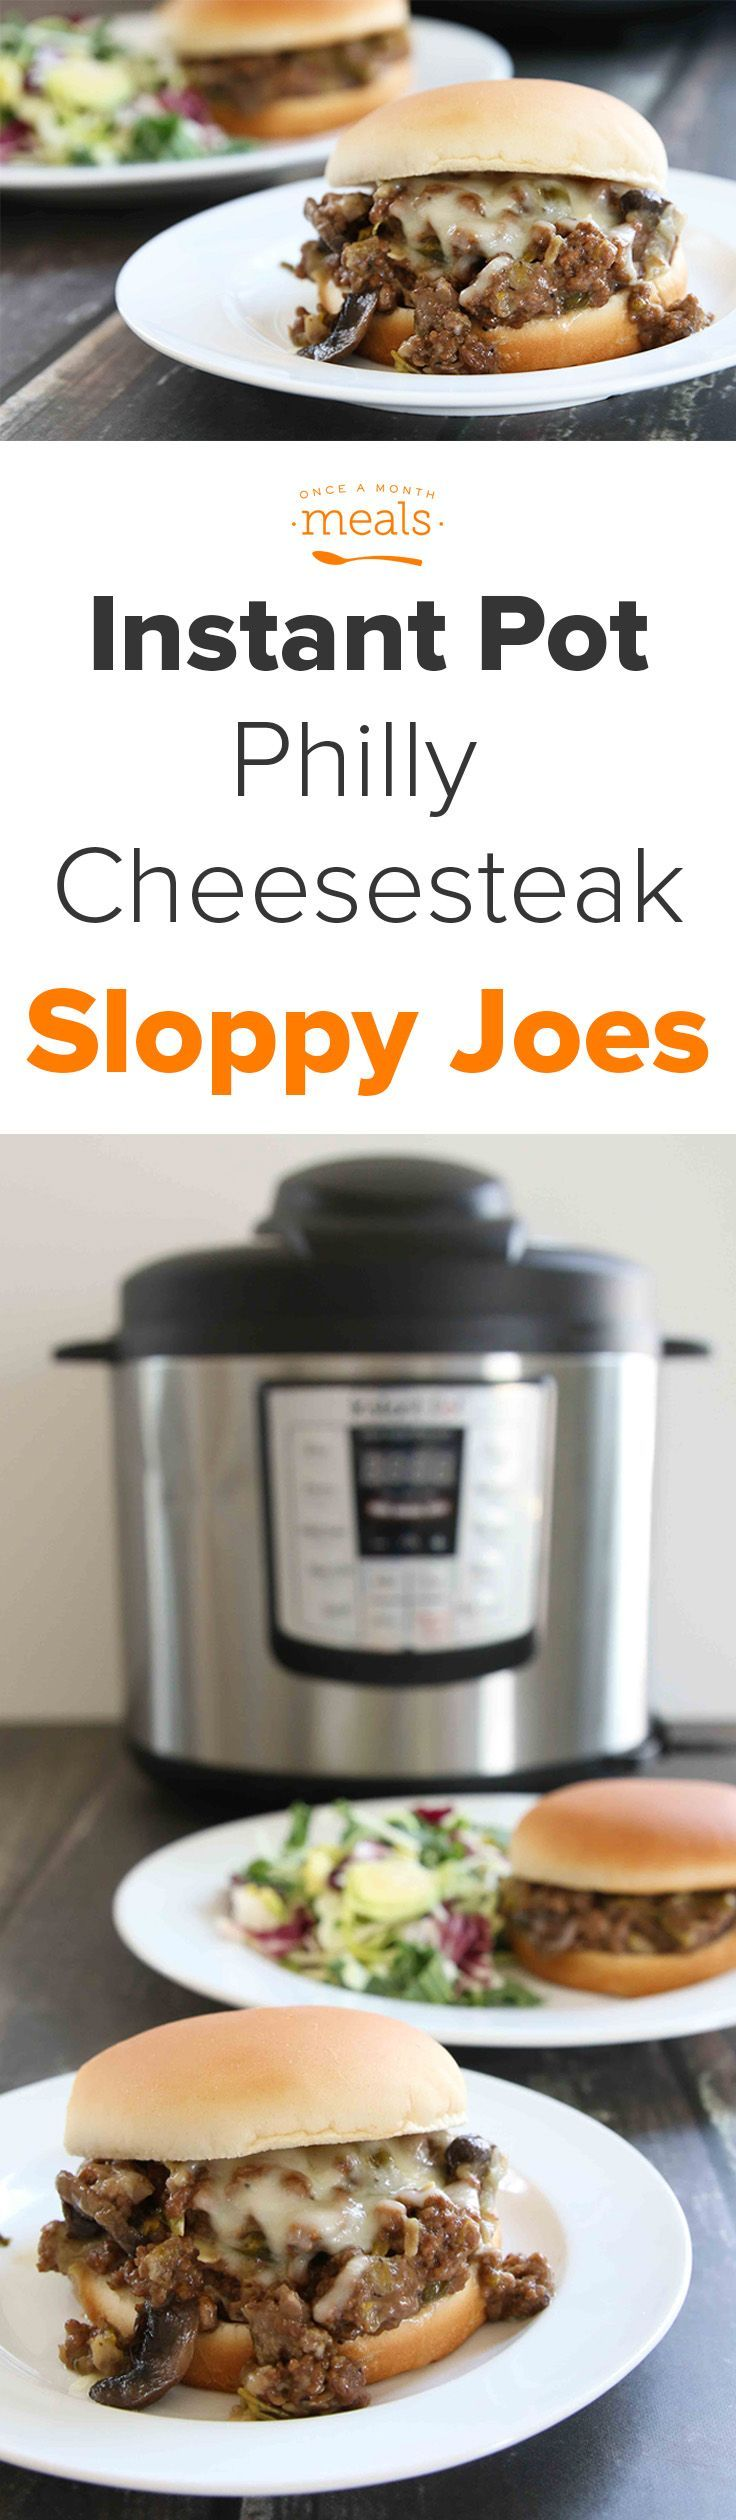 Tired of the same old sloppy joe's? Try our Instant Pot pressure cooker Philly Cheesesteak version! It's a freezer meal recipe mash-up of deliciousness. via @onceamonthmeals paleo crockpot potluck